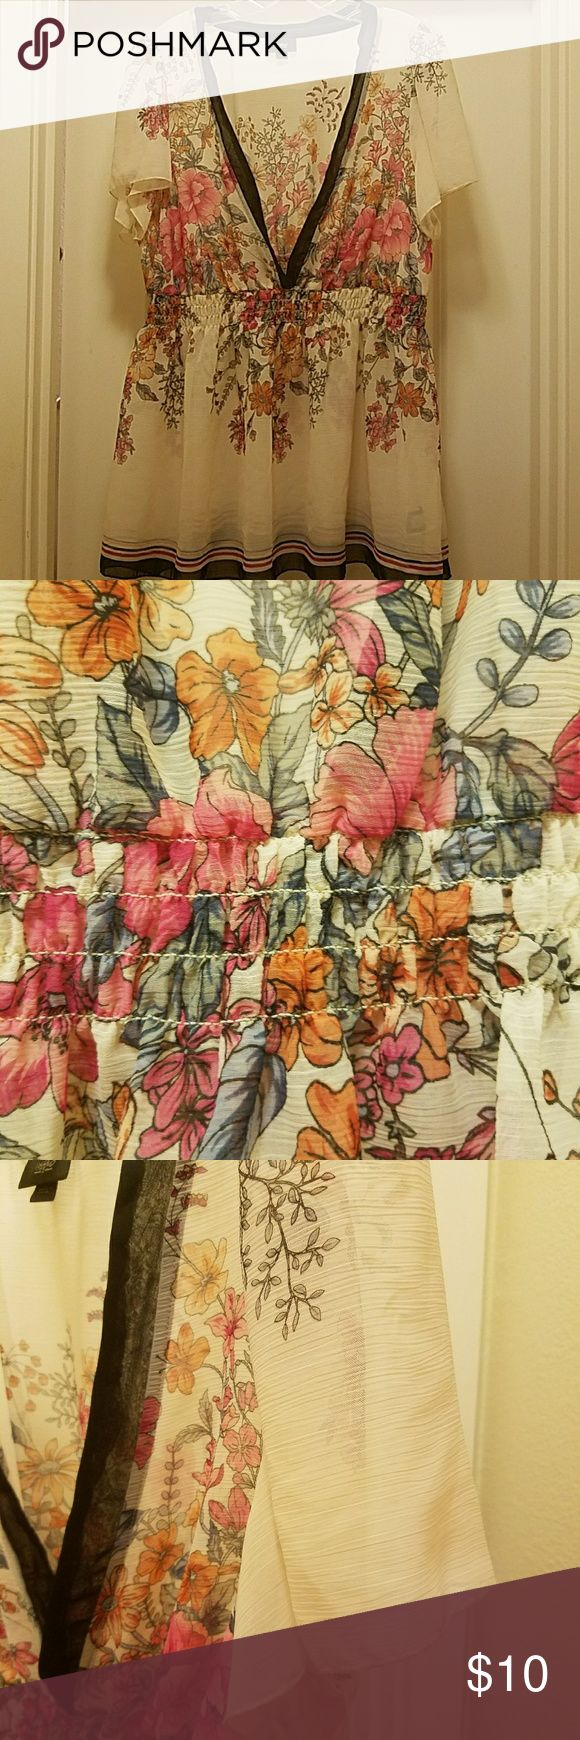 Chiffon sheer floral print blouse Cream chiffon print blouse with pink and orange floral print. Blouse has flutter sleeves and elastic band to show off your waist! Size 16w/18w Mossimo Supply Co. Tops Blouses